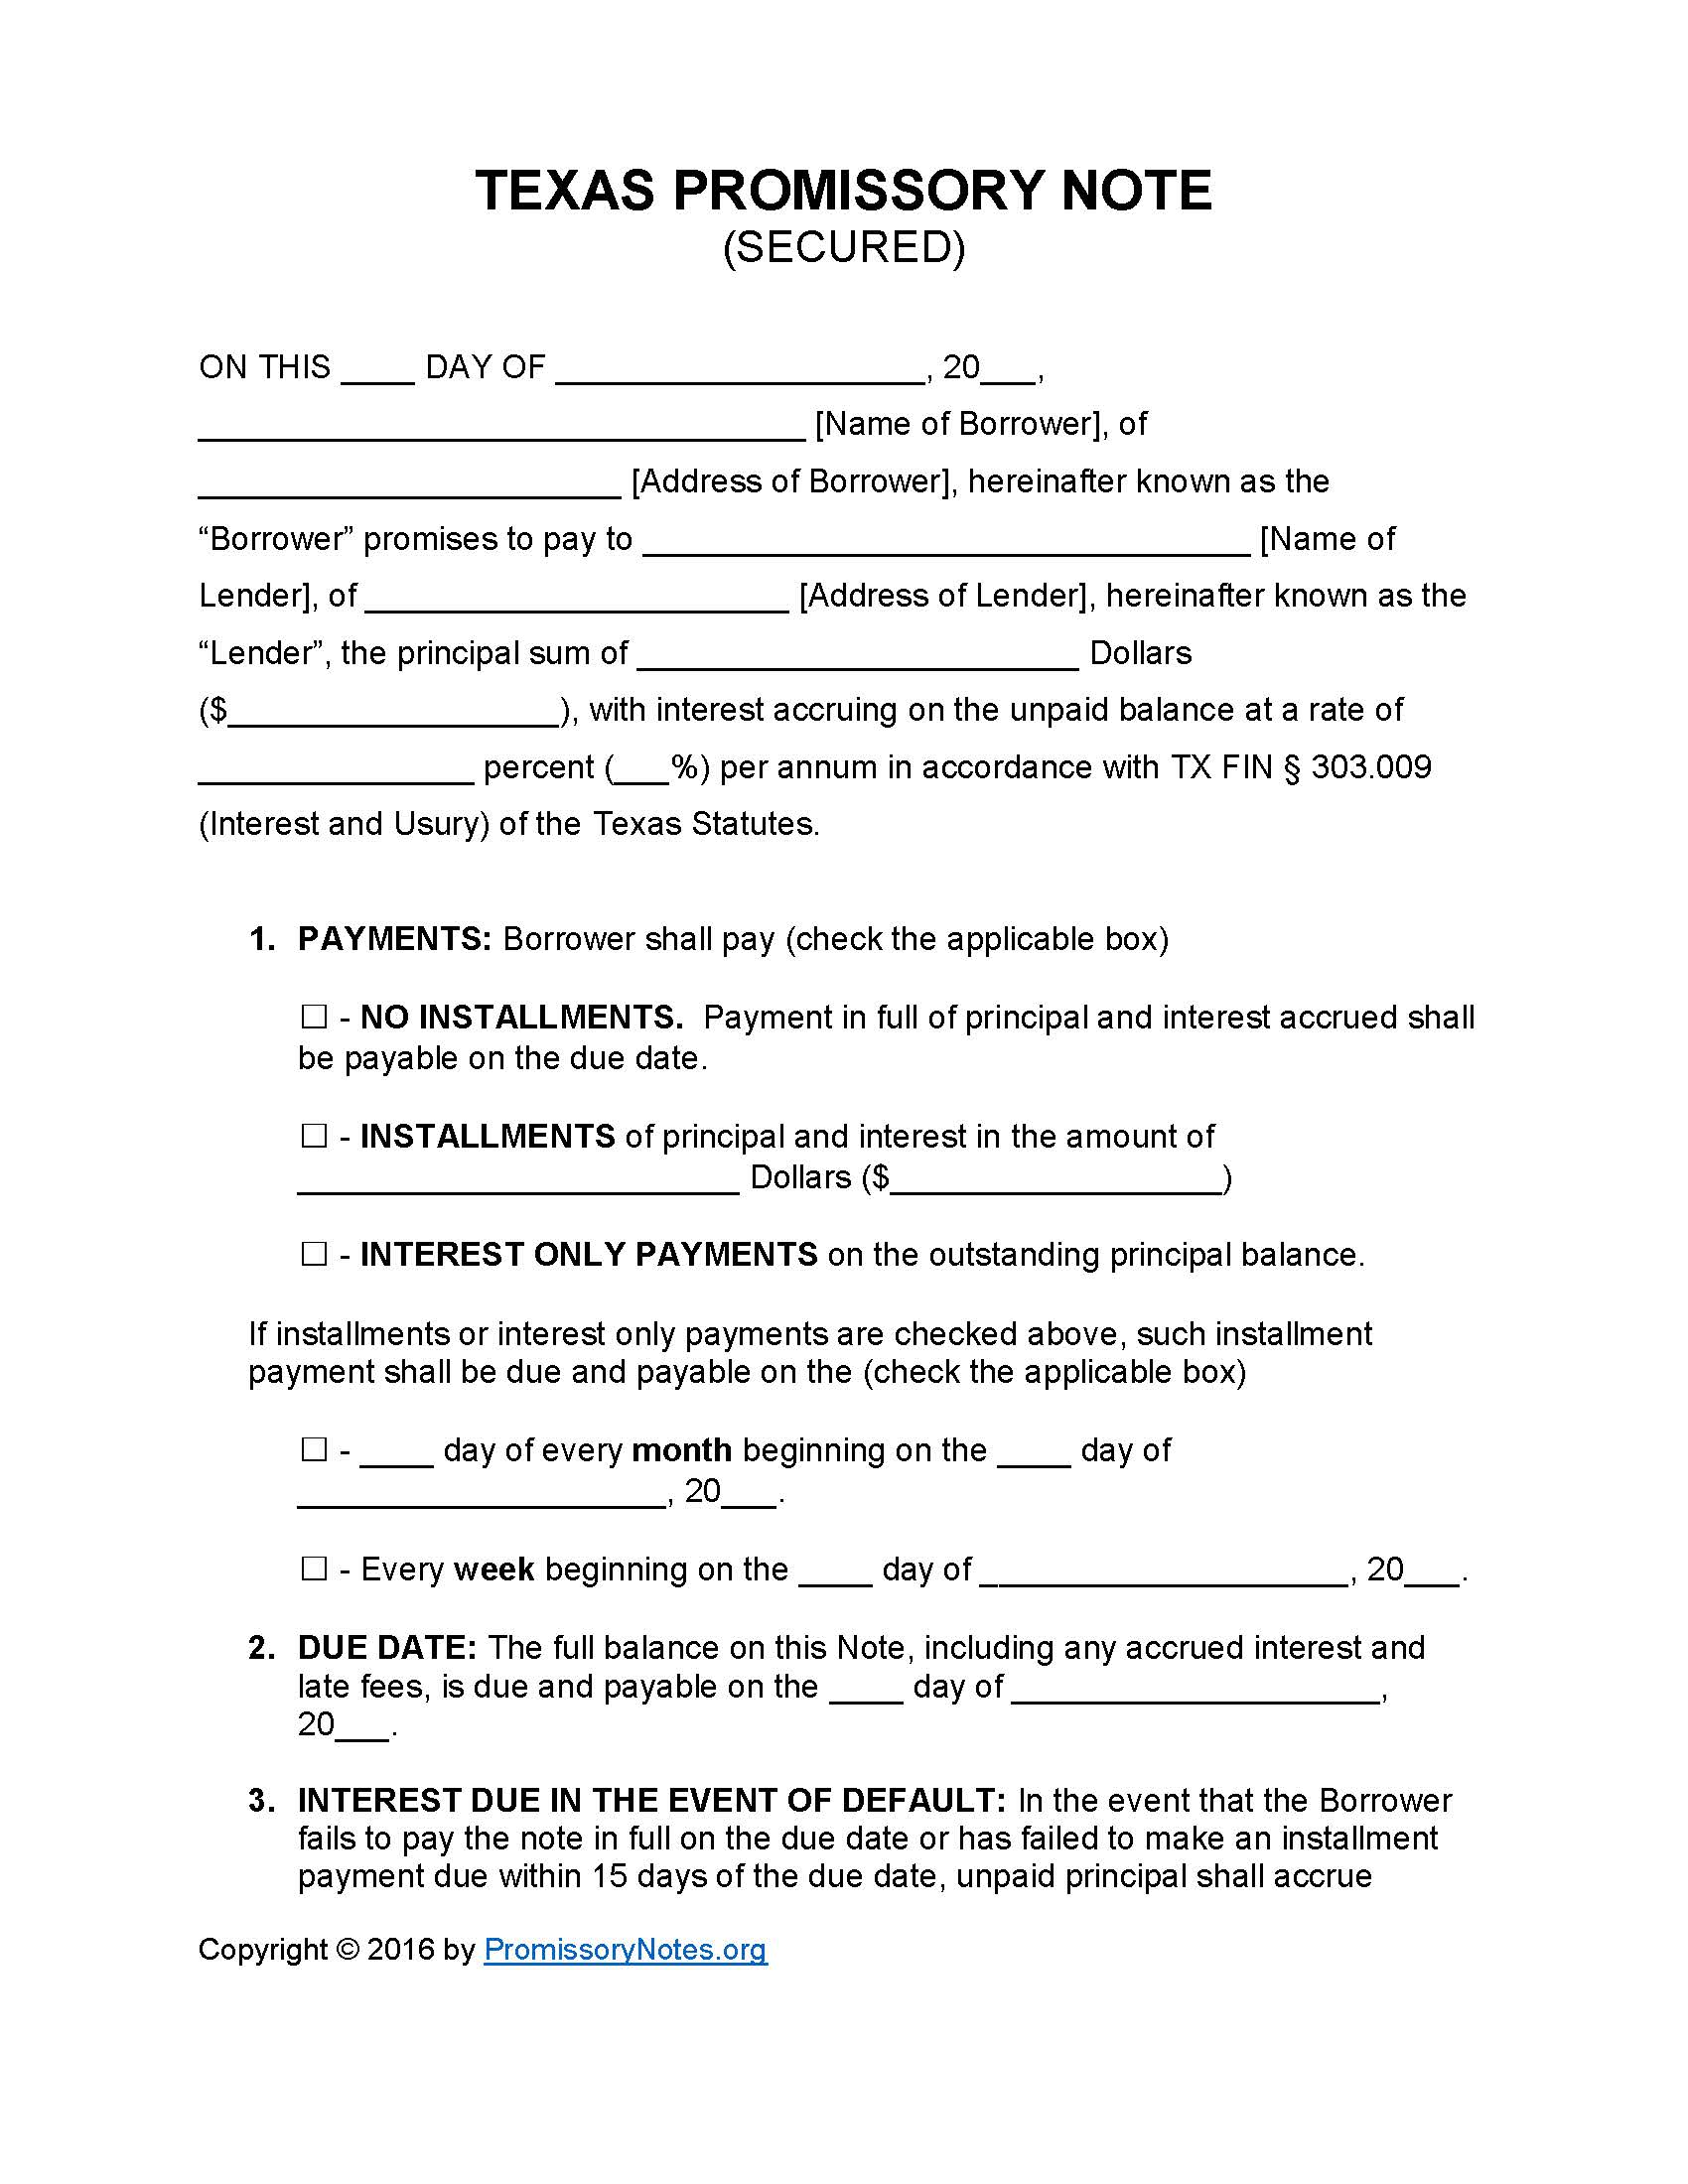 Texas Secured Promissory Note Template   Promissory Notes : Promissory Notes  Promisory Note Sample